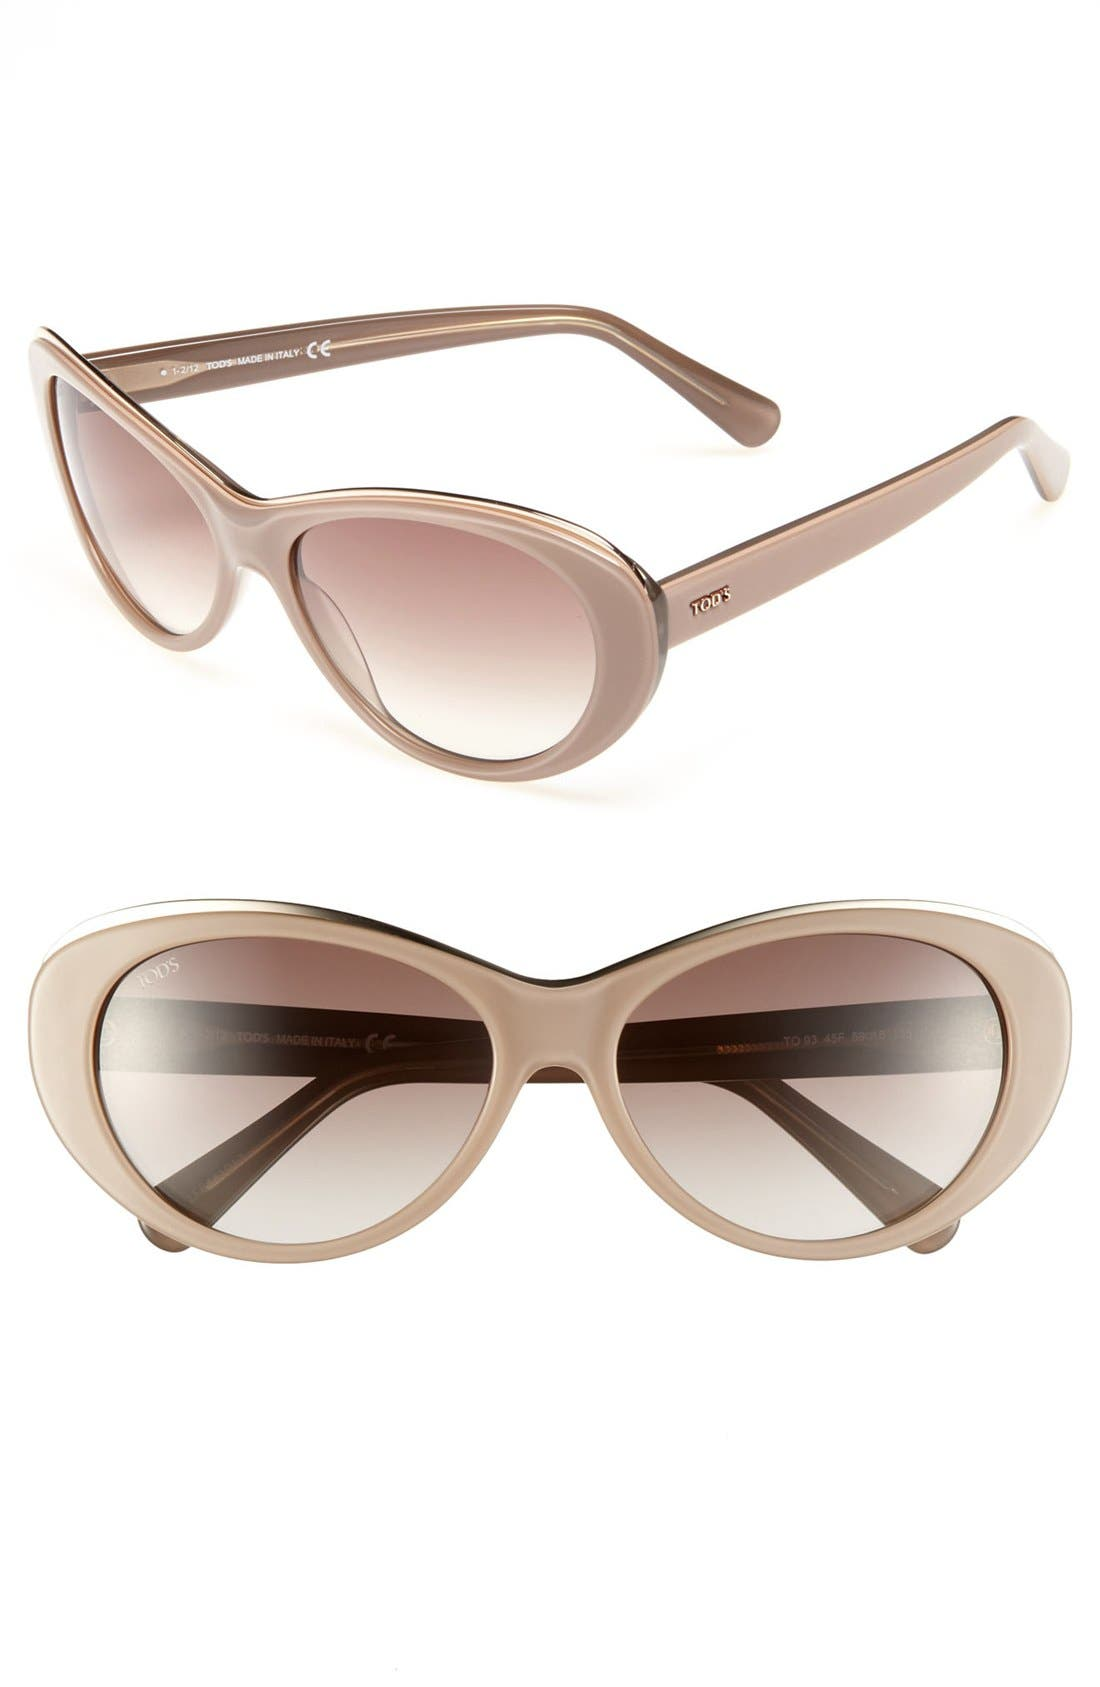 Main Image - Tod's 59mm Metal Trim Sunglasses